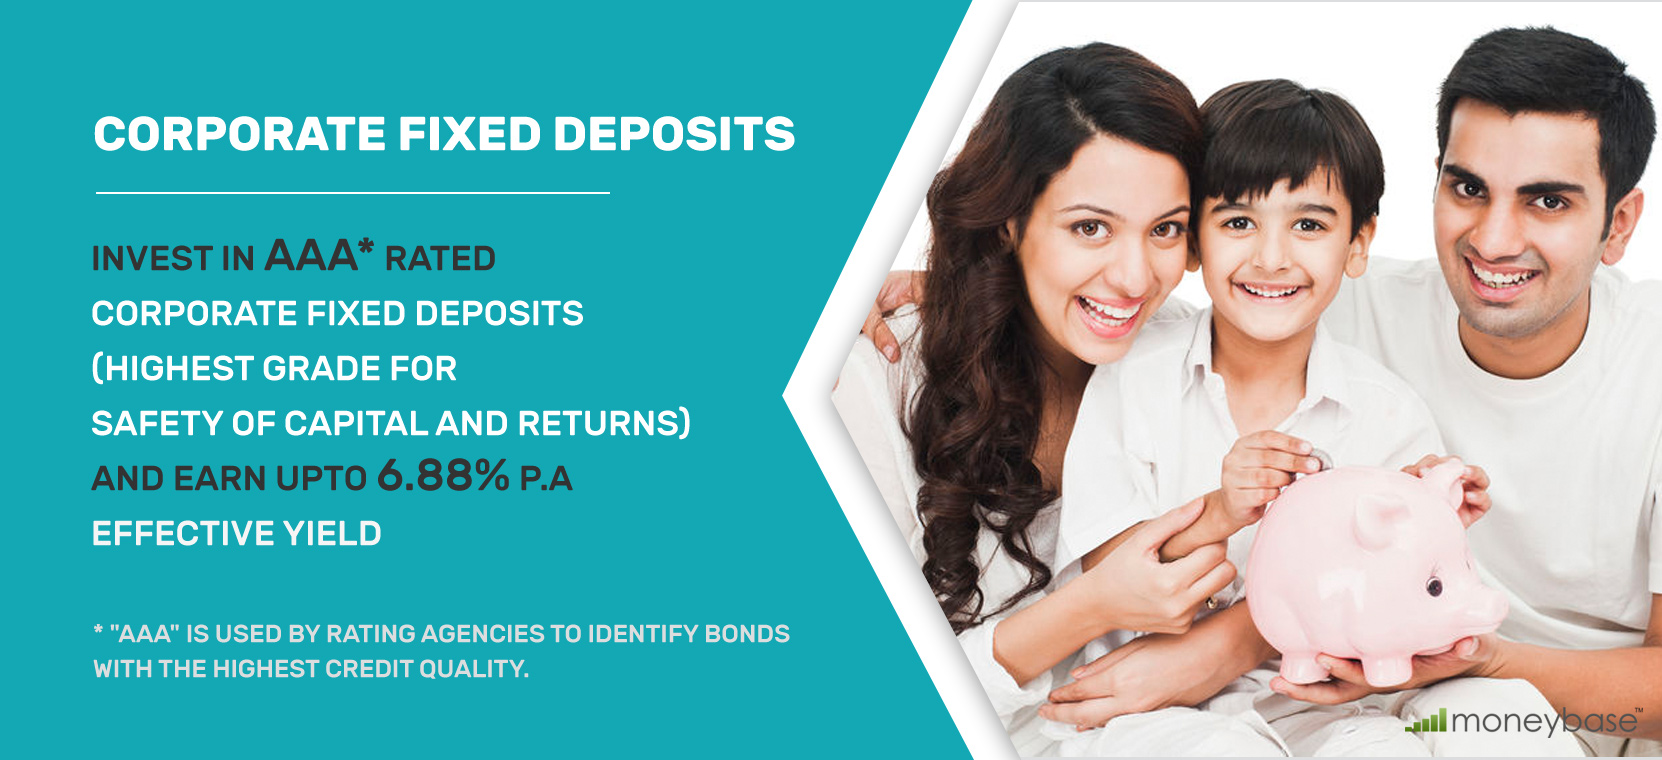 Moneybase Corporate Fixed Deposit Earn upto 6.88%